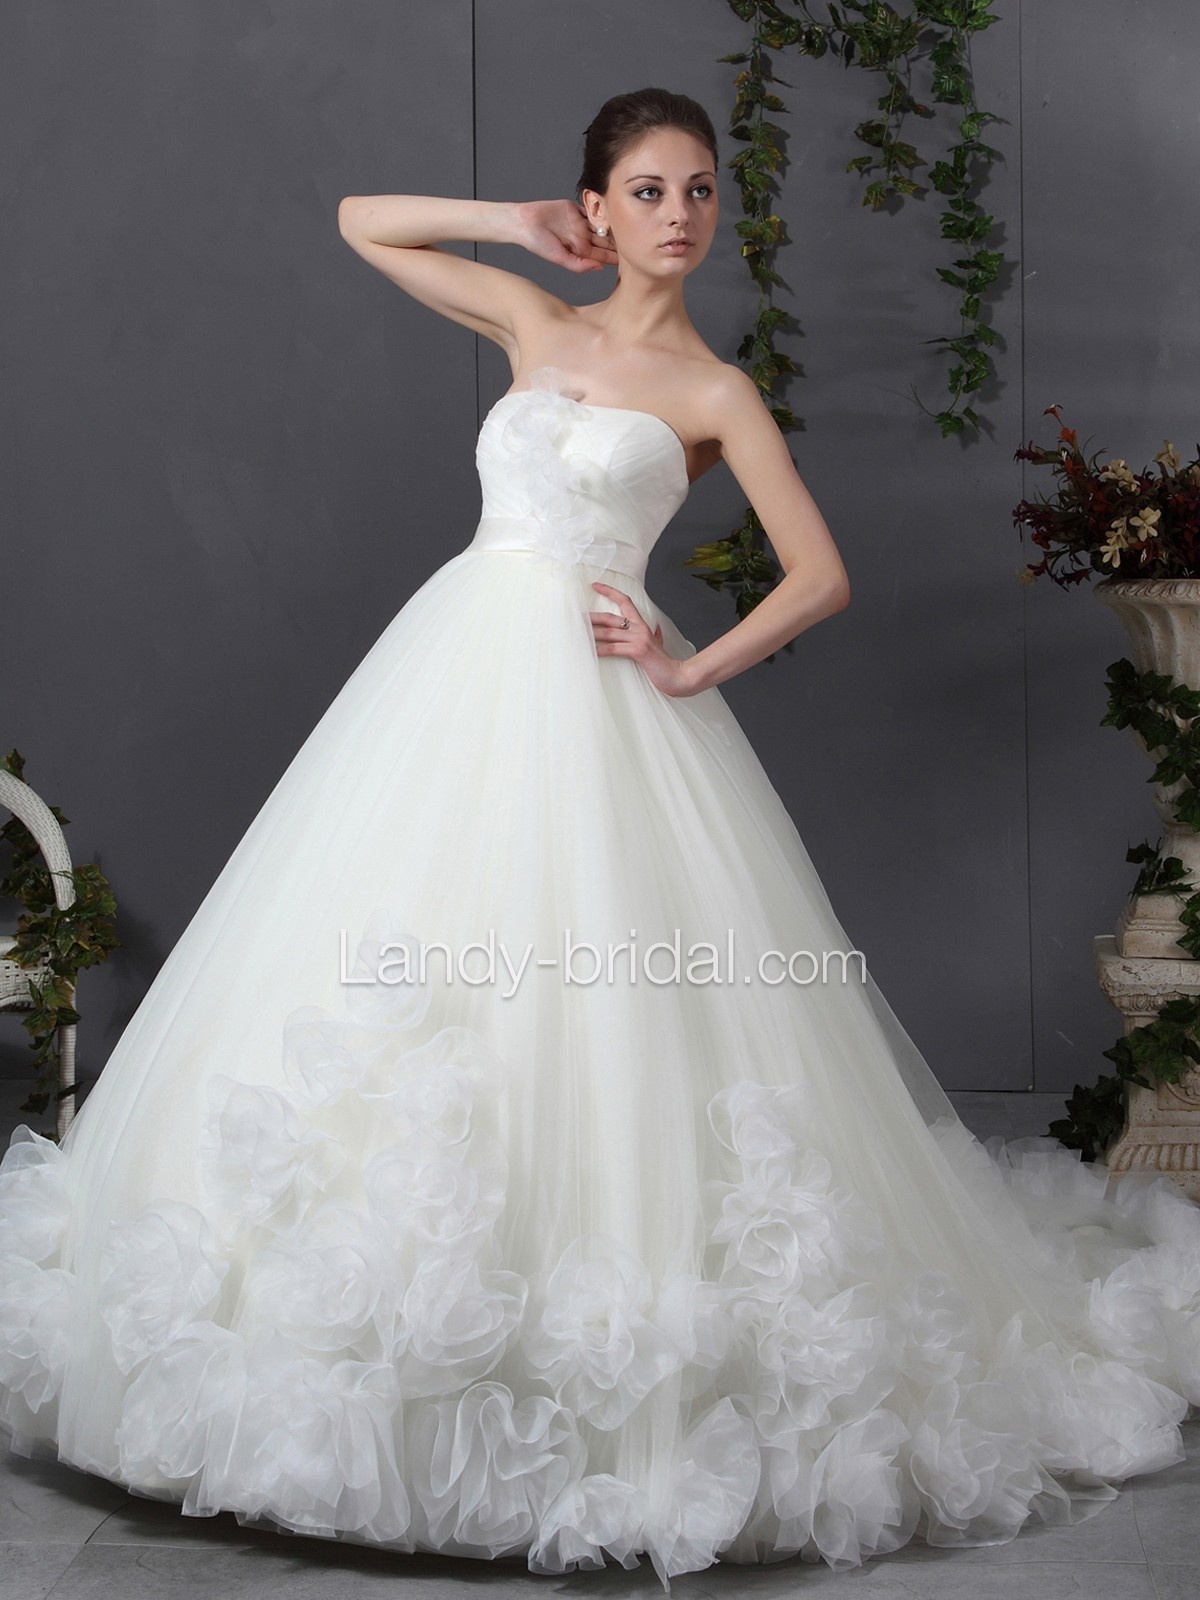 Wedding the world wedding dresses for girls for Dresses for girls wedding